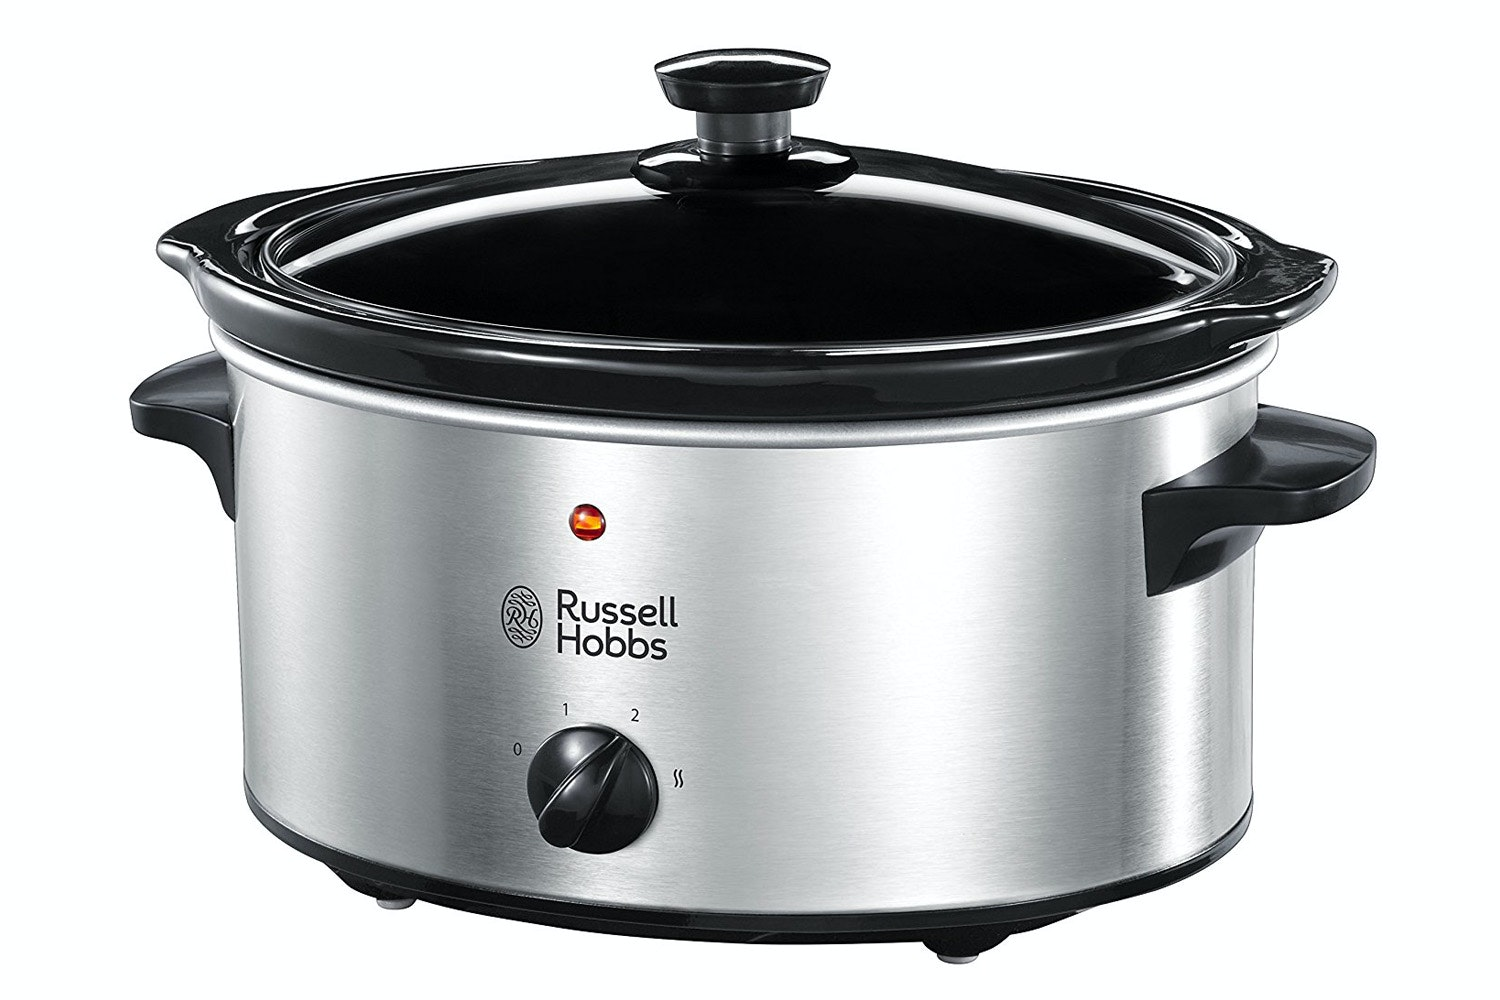 Russell Hobbs 3.5L Stainless Steel Slow Cooker | 23200